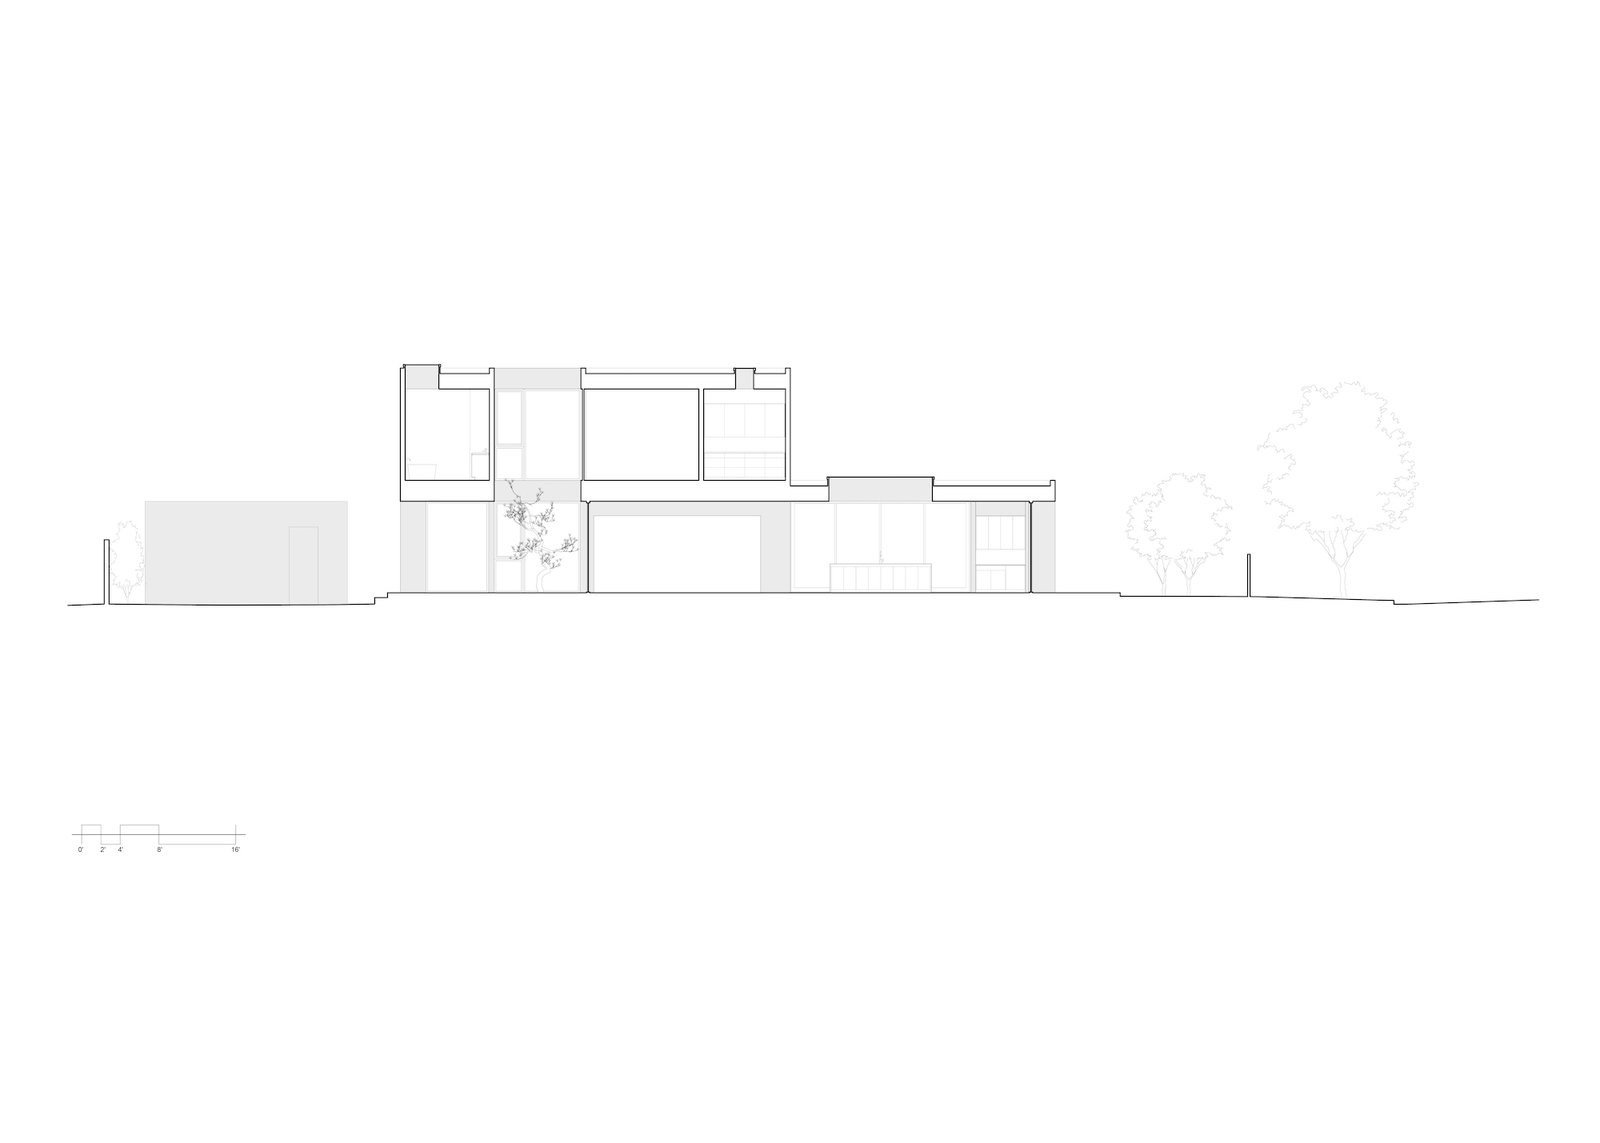 Section of Culver City Case Study House by Woods + Dangaran